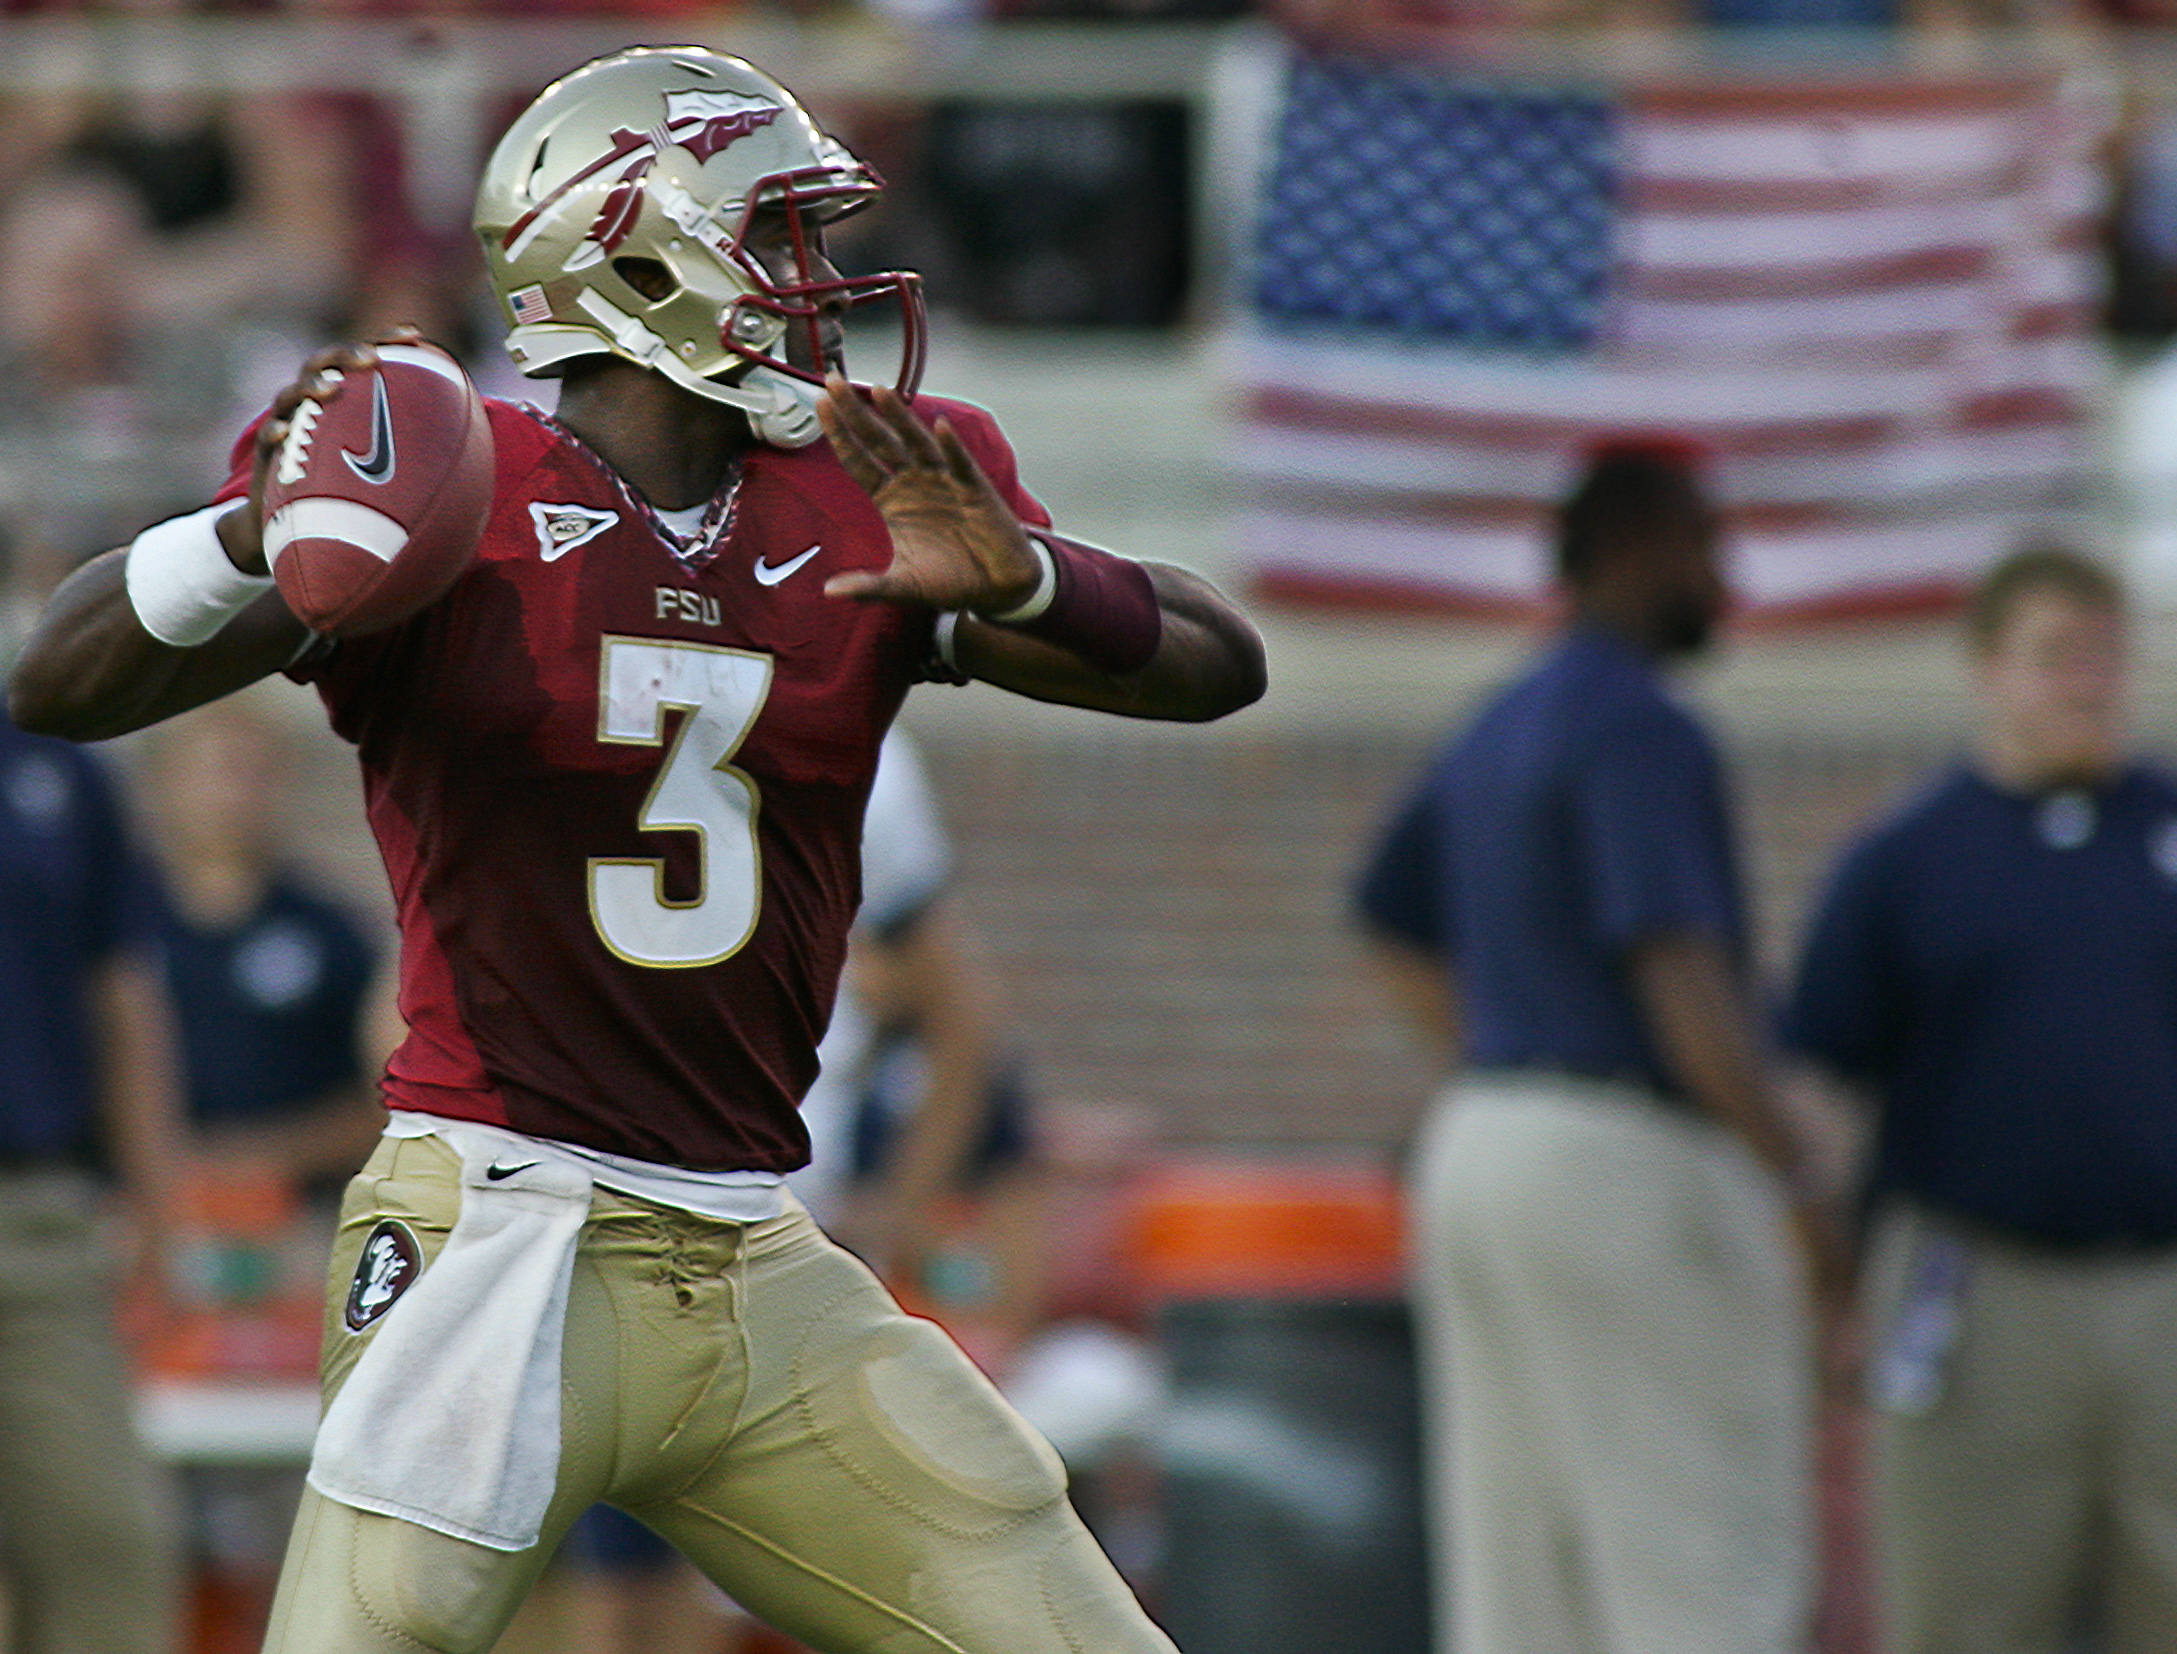 Florida State quarterback E.J. Manuel (3) looks for a receiver against Charleston Southern in the second quarter of an NCAA college football game on Saturday, Sept. 10, 2011, in Tallahassee, Fla. (AP Photo/Phil Sears)